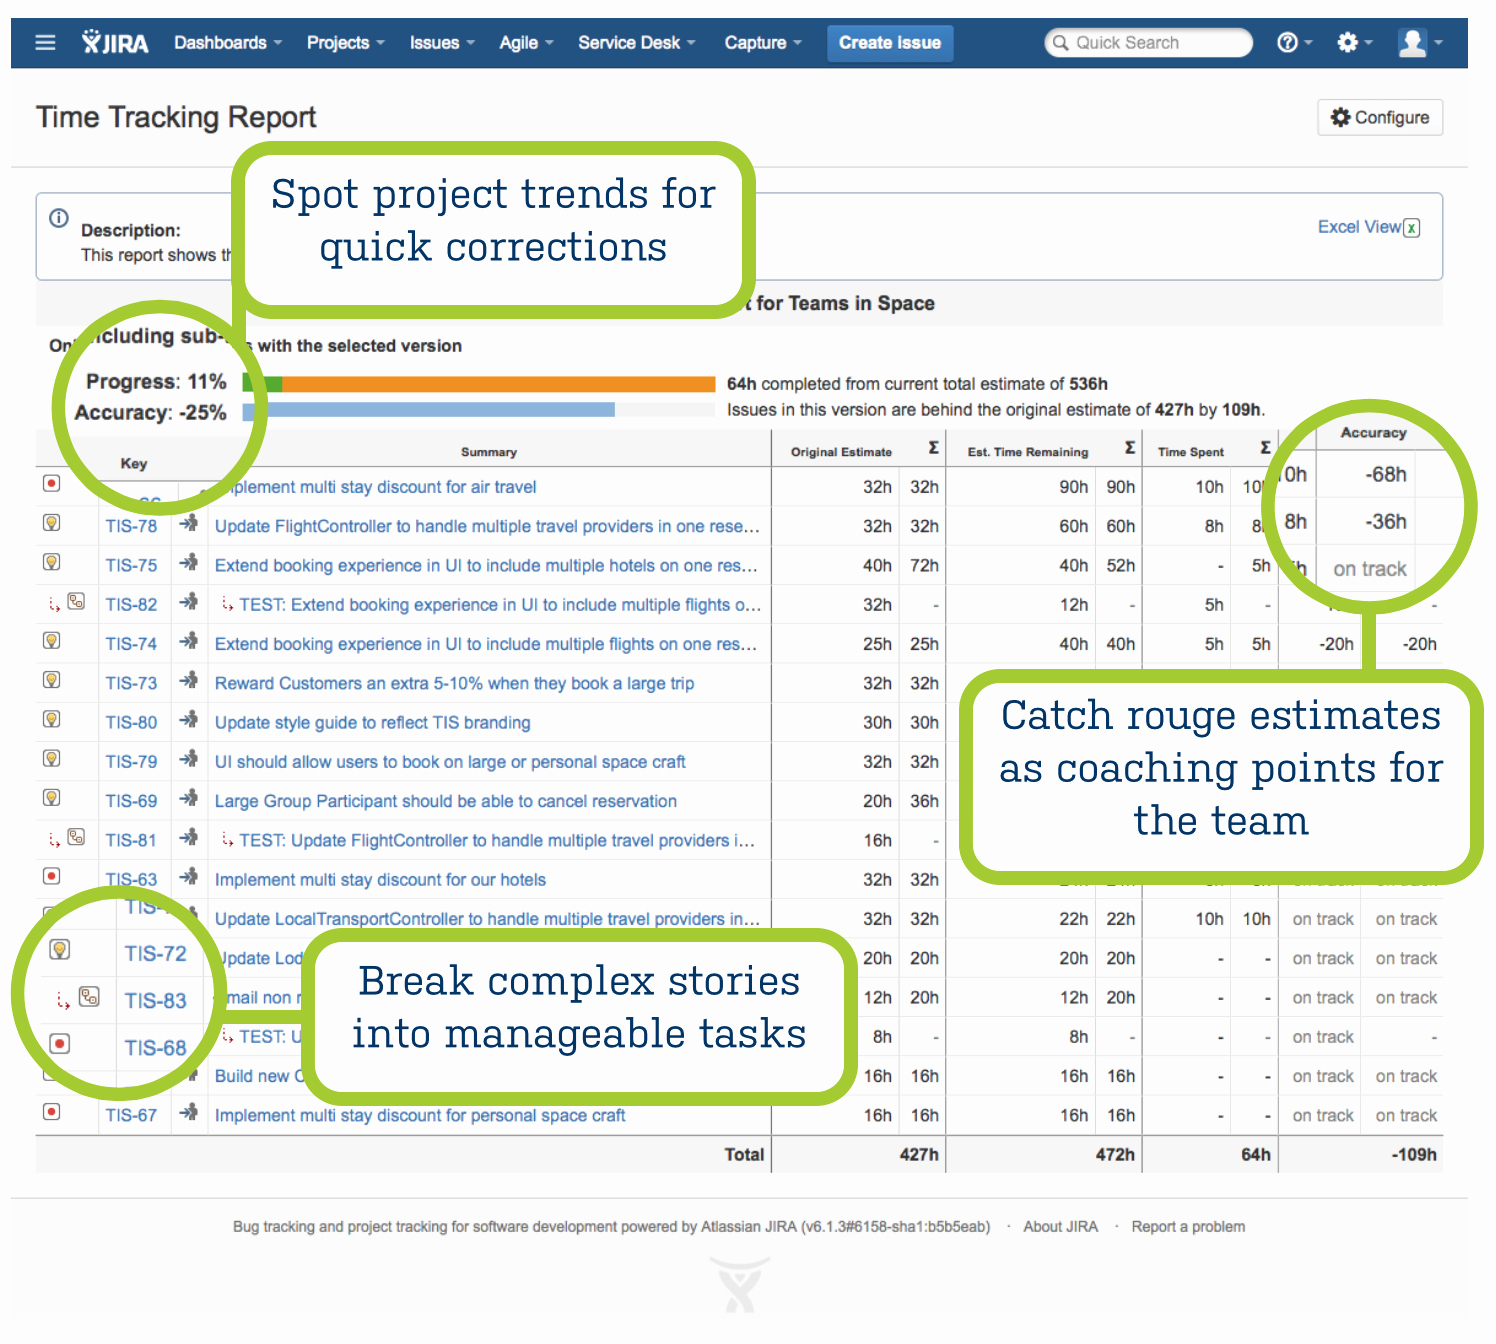 Resource Capacity Plan Template Luxury Capacity Planning In Jira for Teams with Specialists